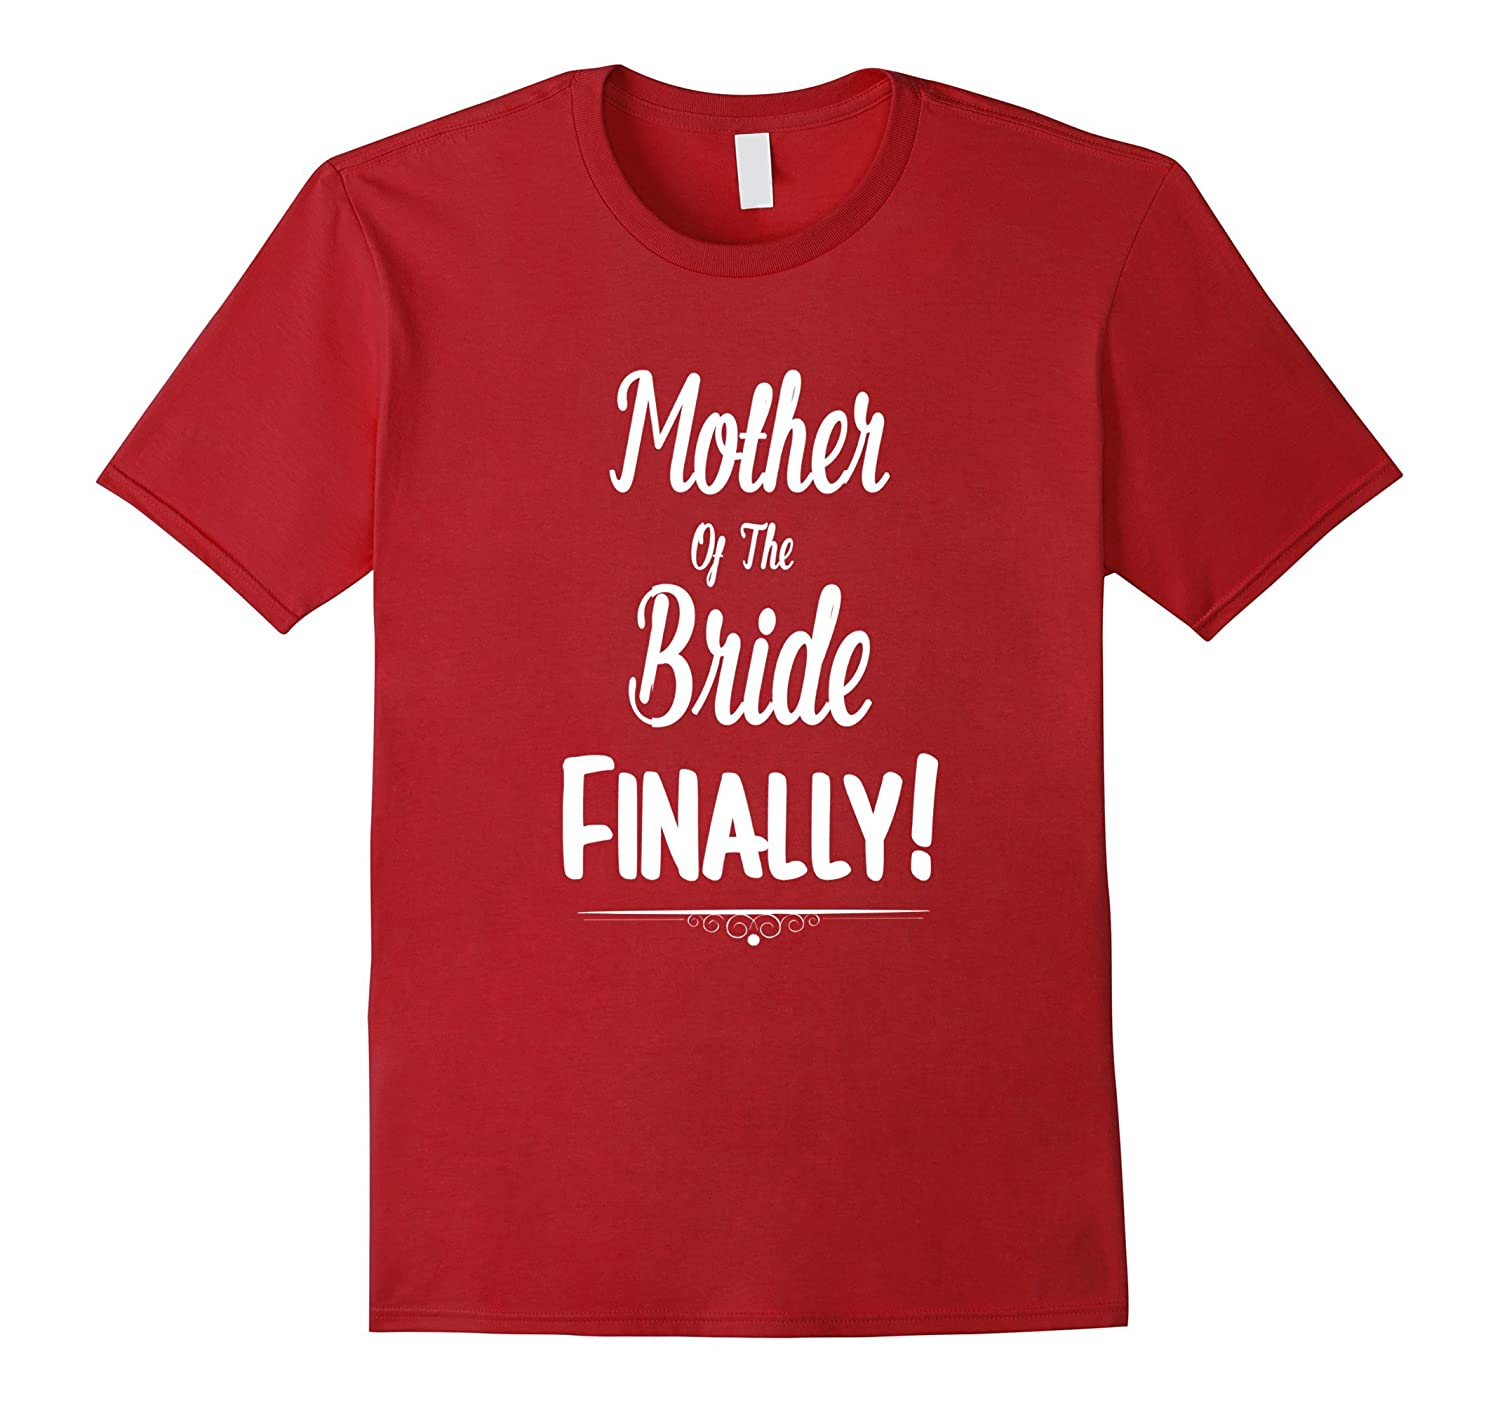 612b7faf5 Mother Of The Bride Finally Wedding T-Shirt Funny Marriage-TH - TEEHELEN